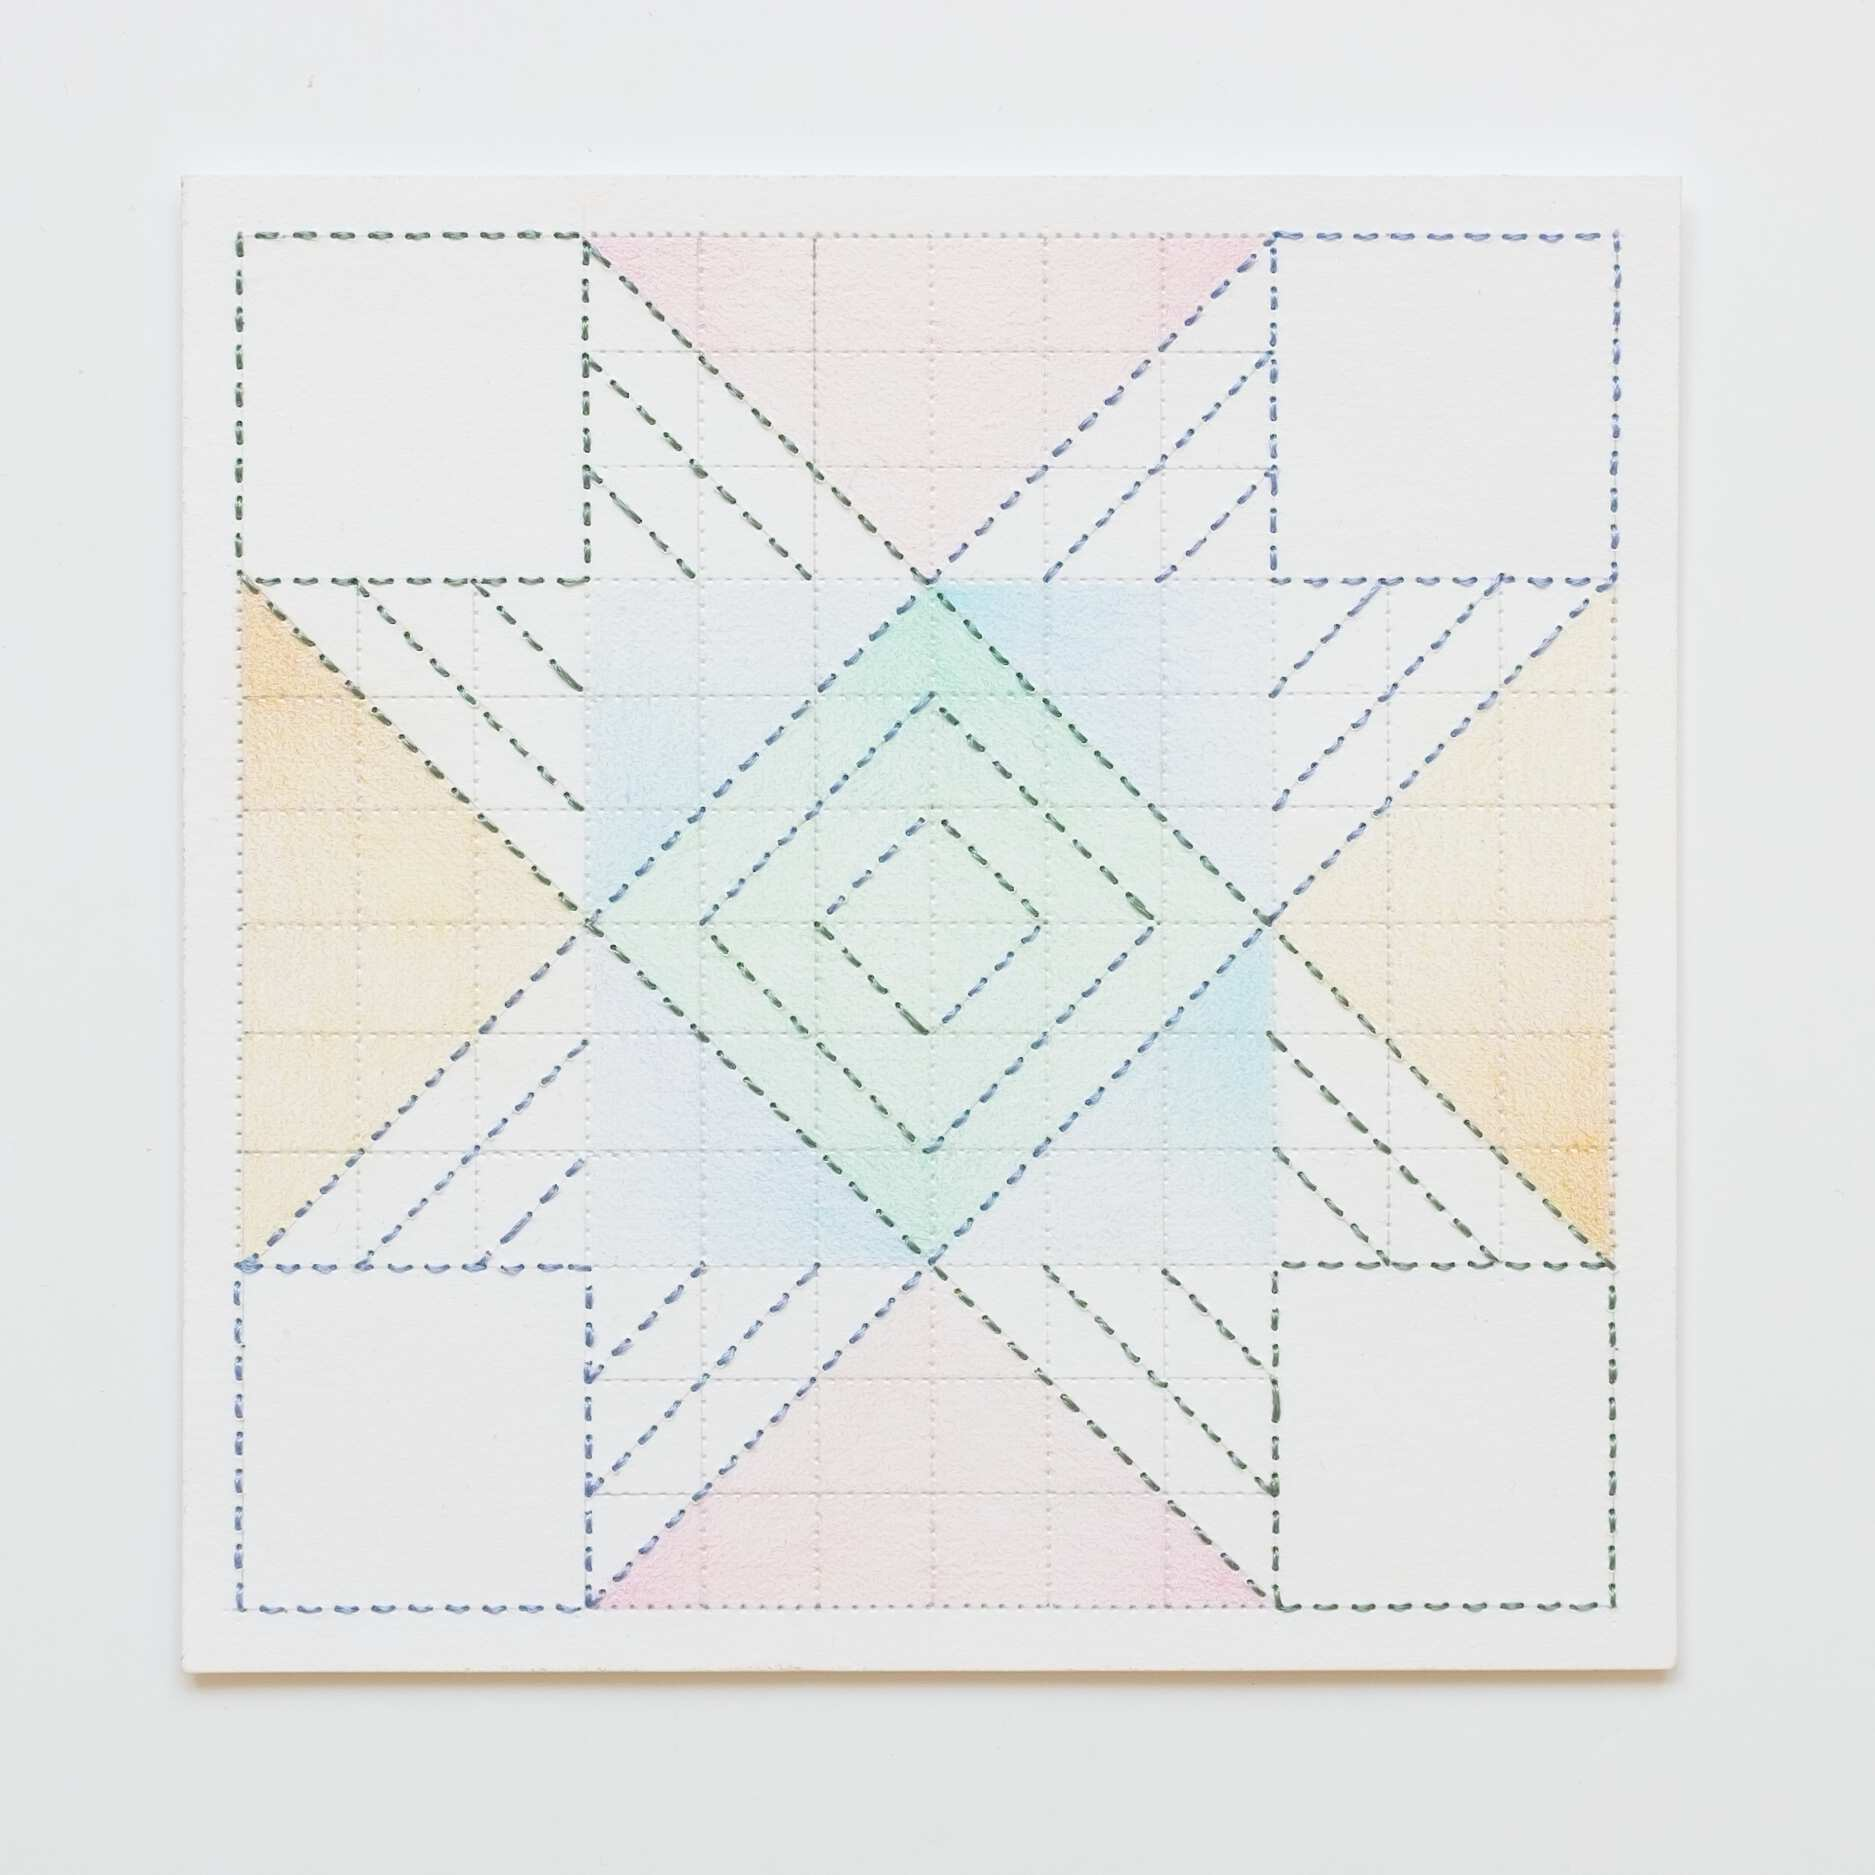 Quilted Composition [white // squares PGBYO], Hand-embroidered silk on paper, pencil, coloured pencil, 2019